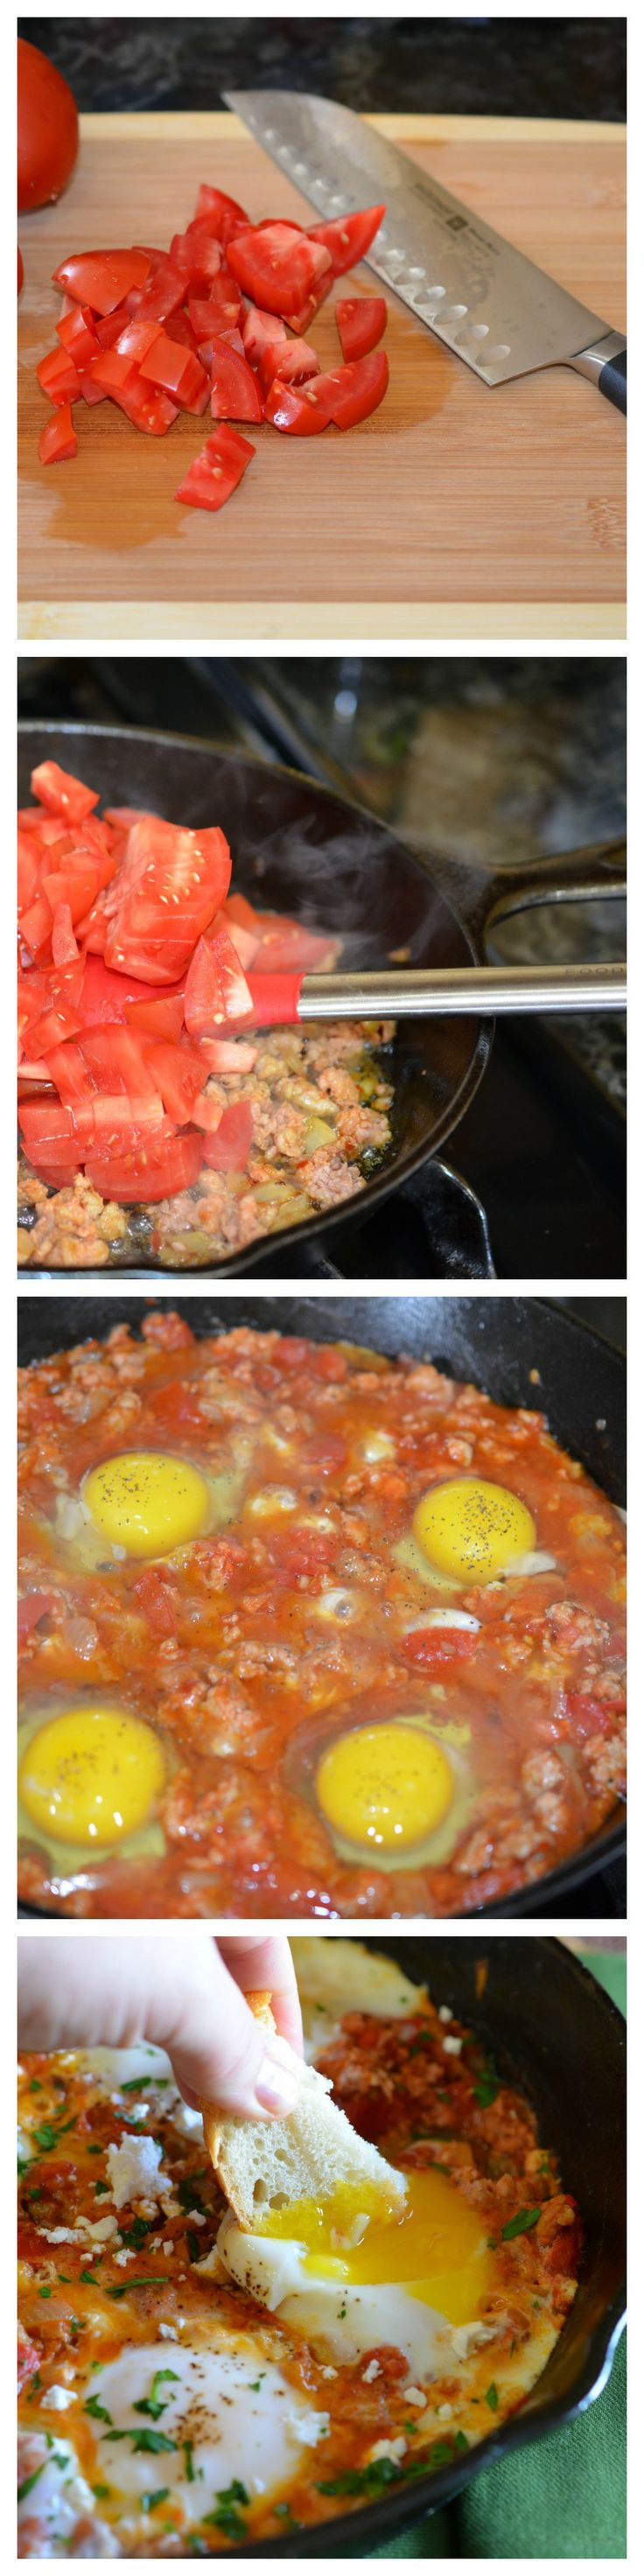 Eggs Poached in Tomato Sauce- wonderful meal for breakfast, lunch or dinner